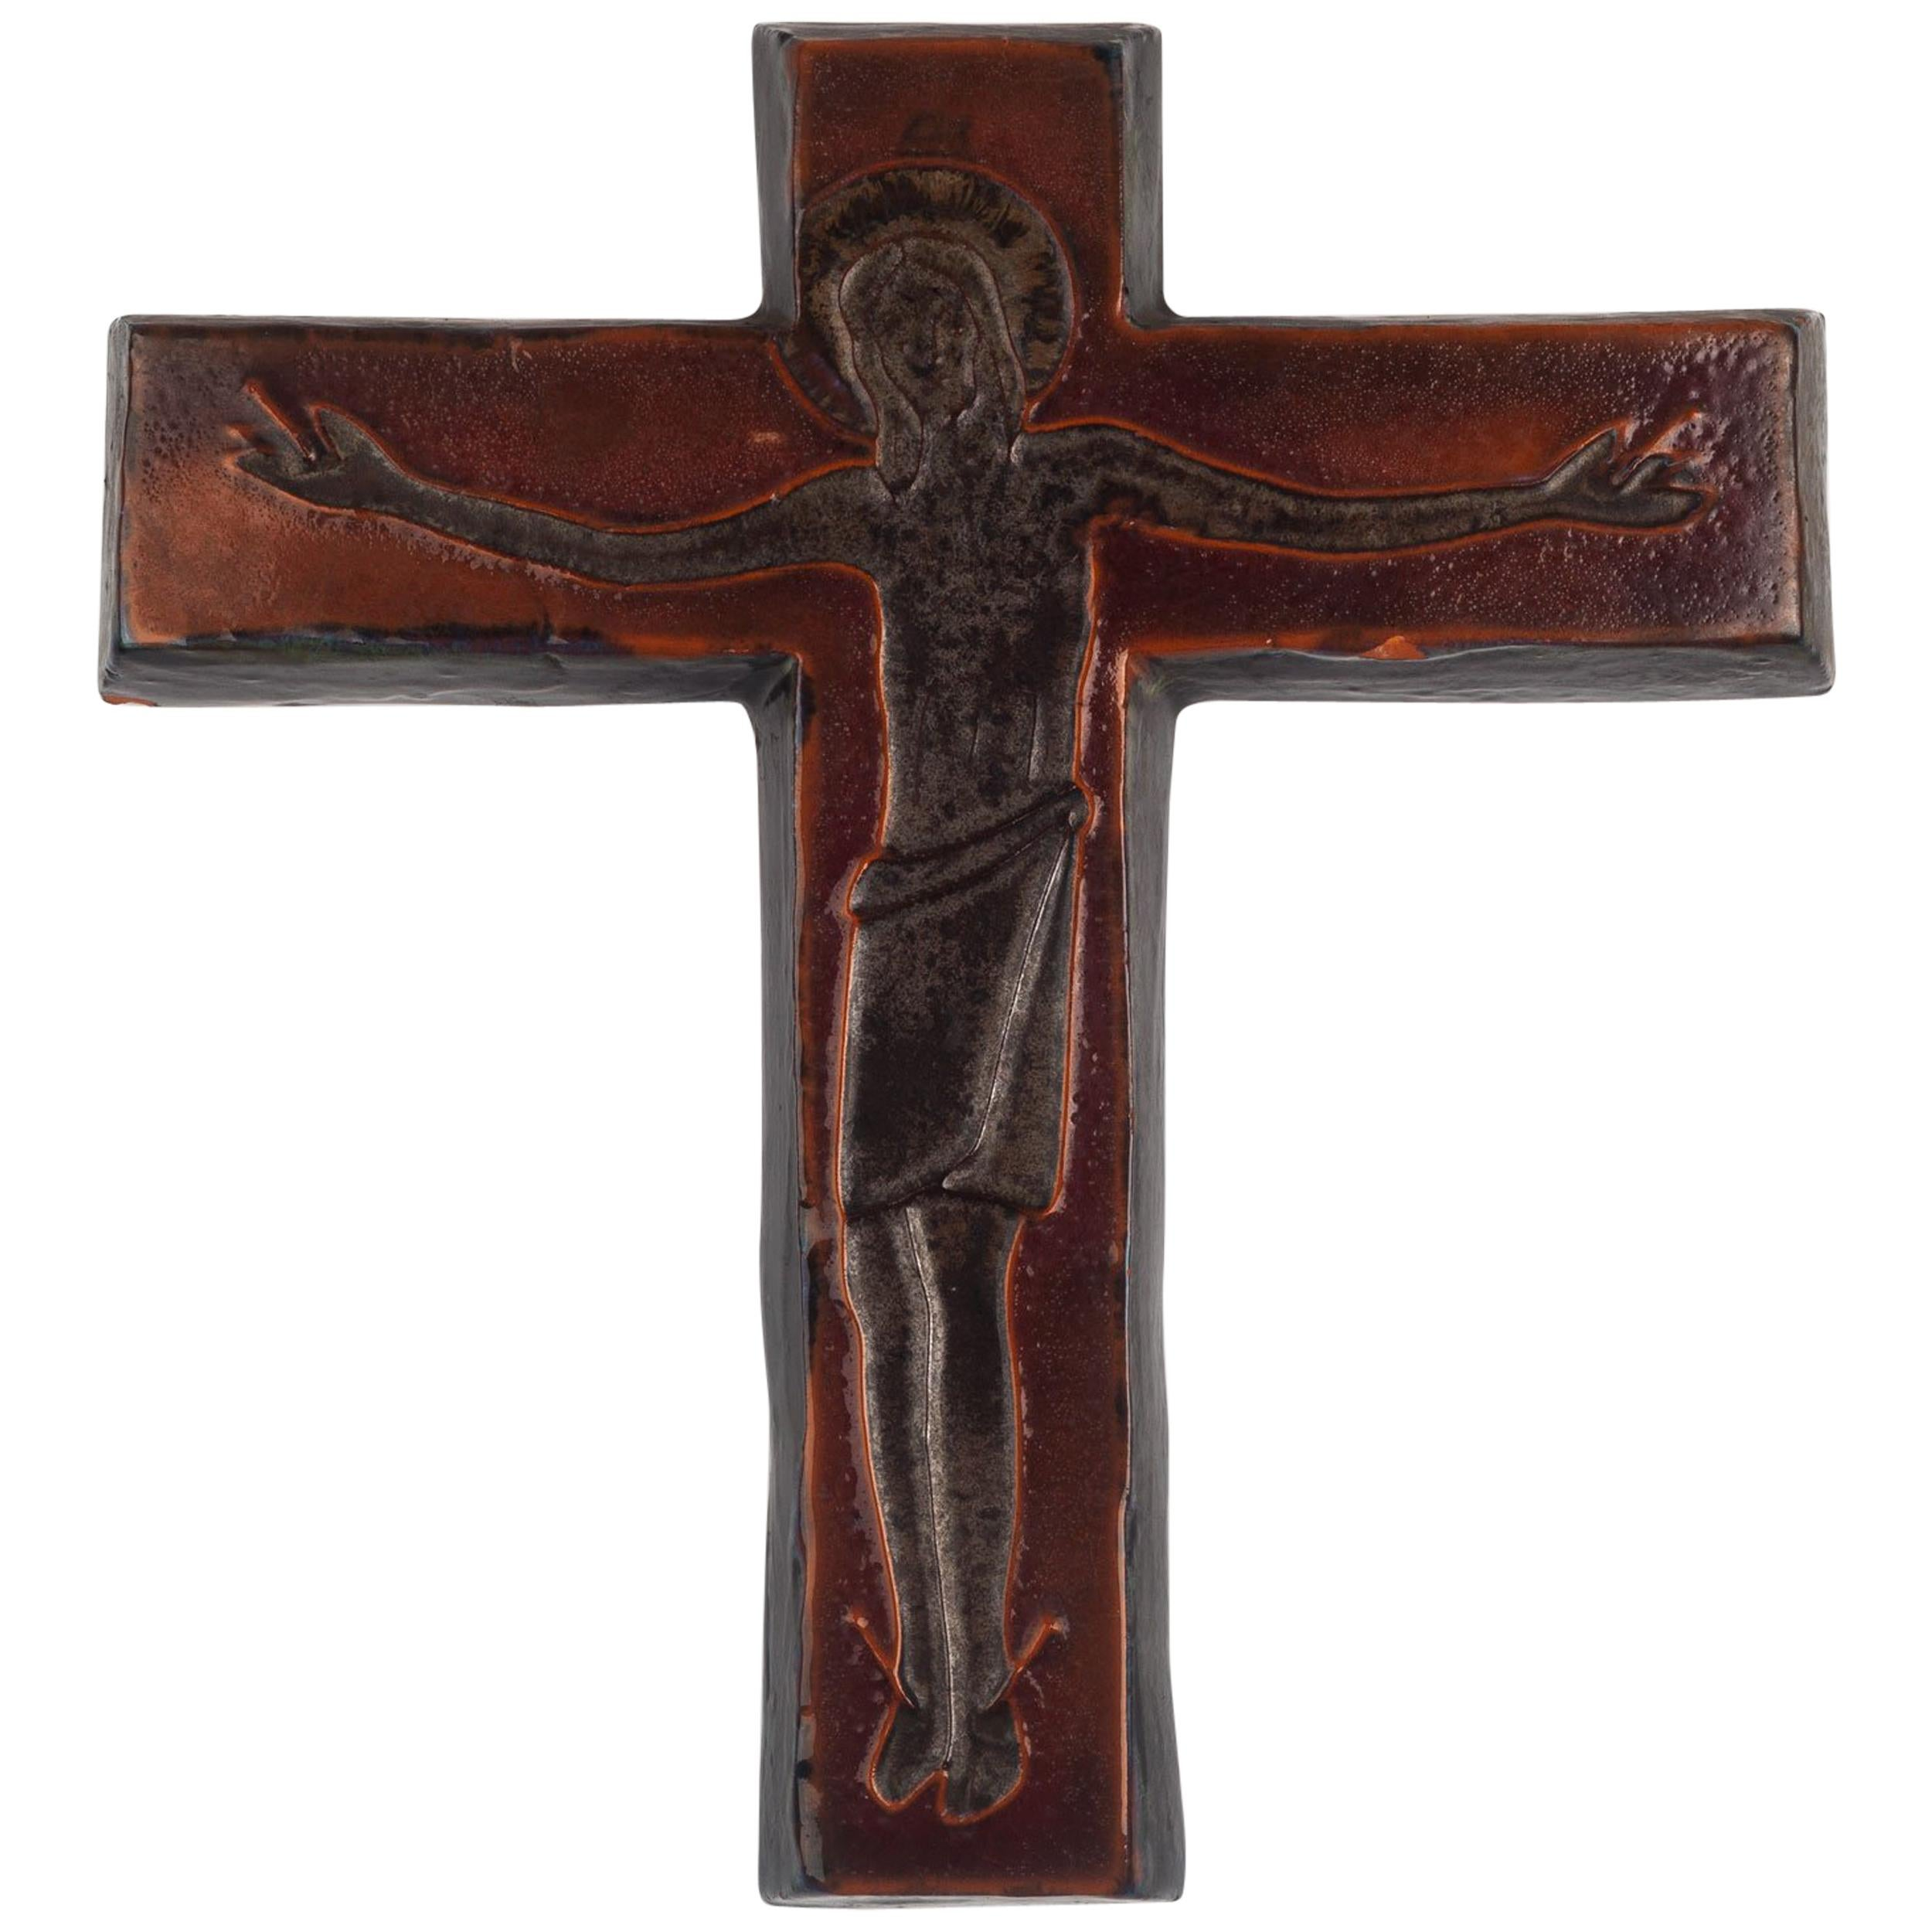 Art High Quality Materials Modernist Crucifix Copper On Wood Enamelling French Enamel